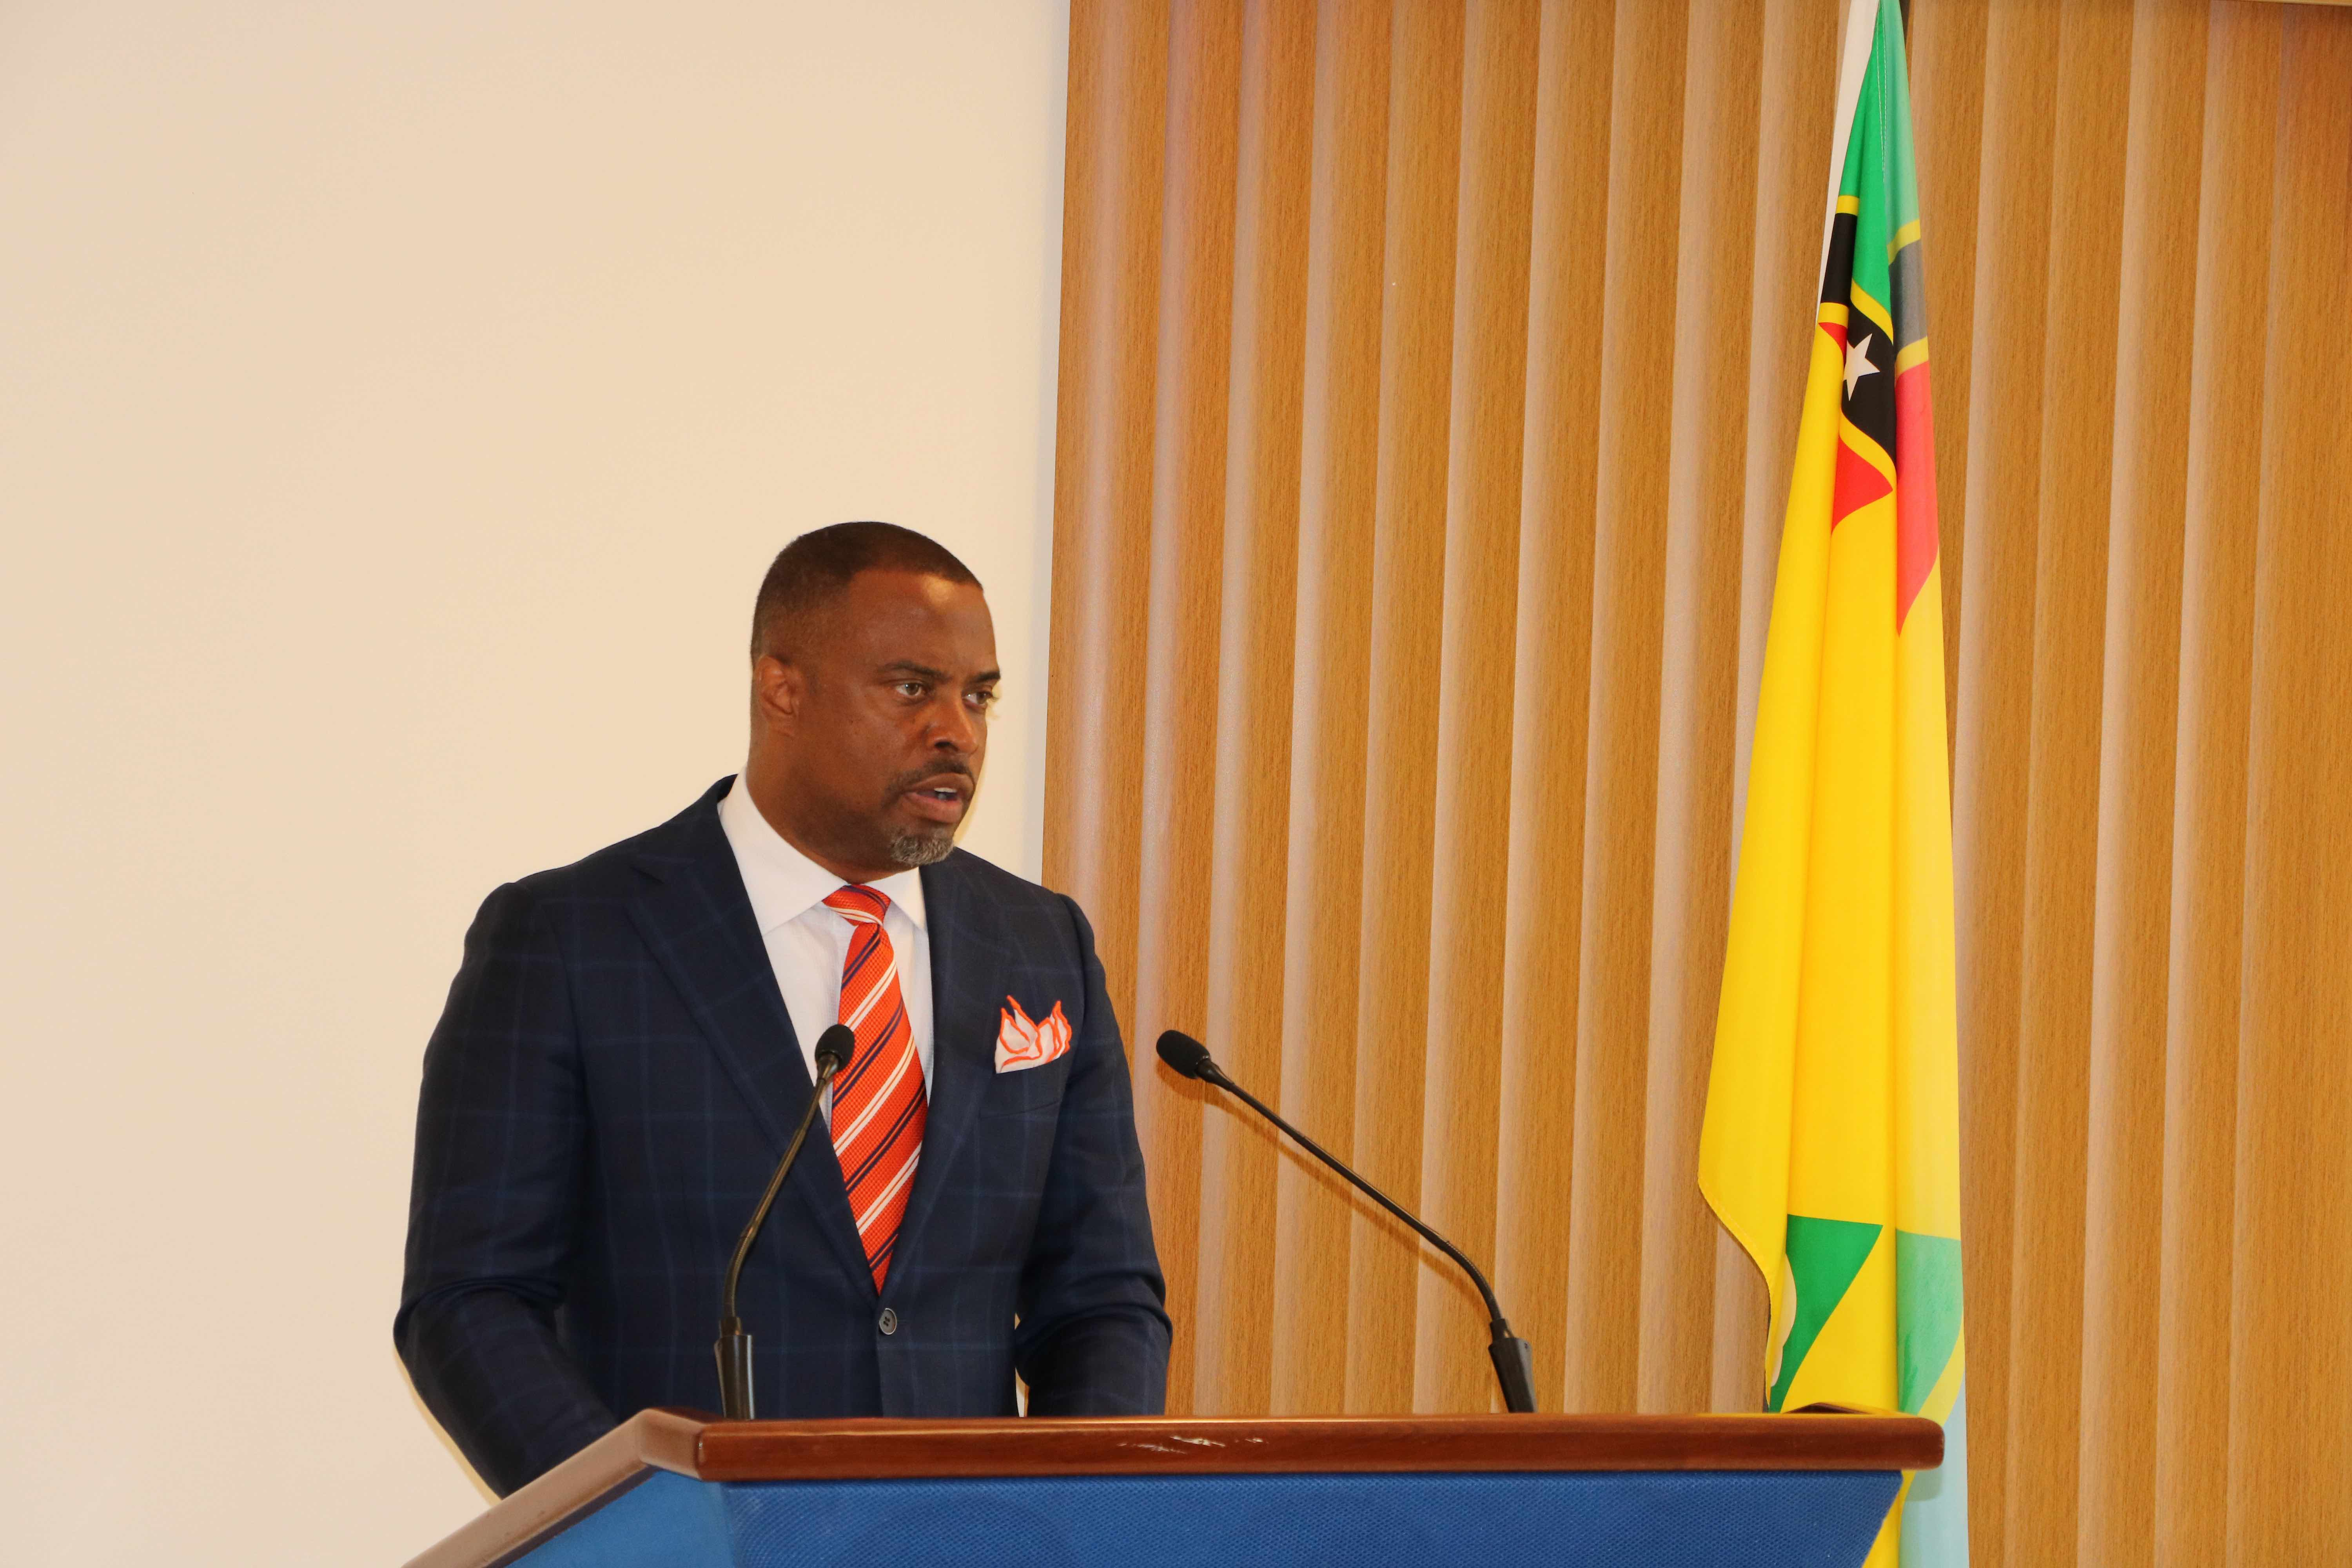 Hon. Mark Brantley, Premier of Nevis and Minister of Finance